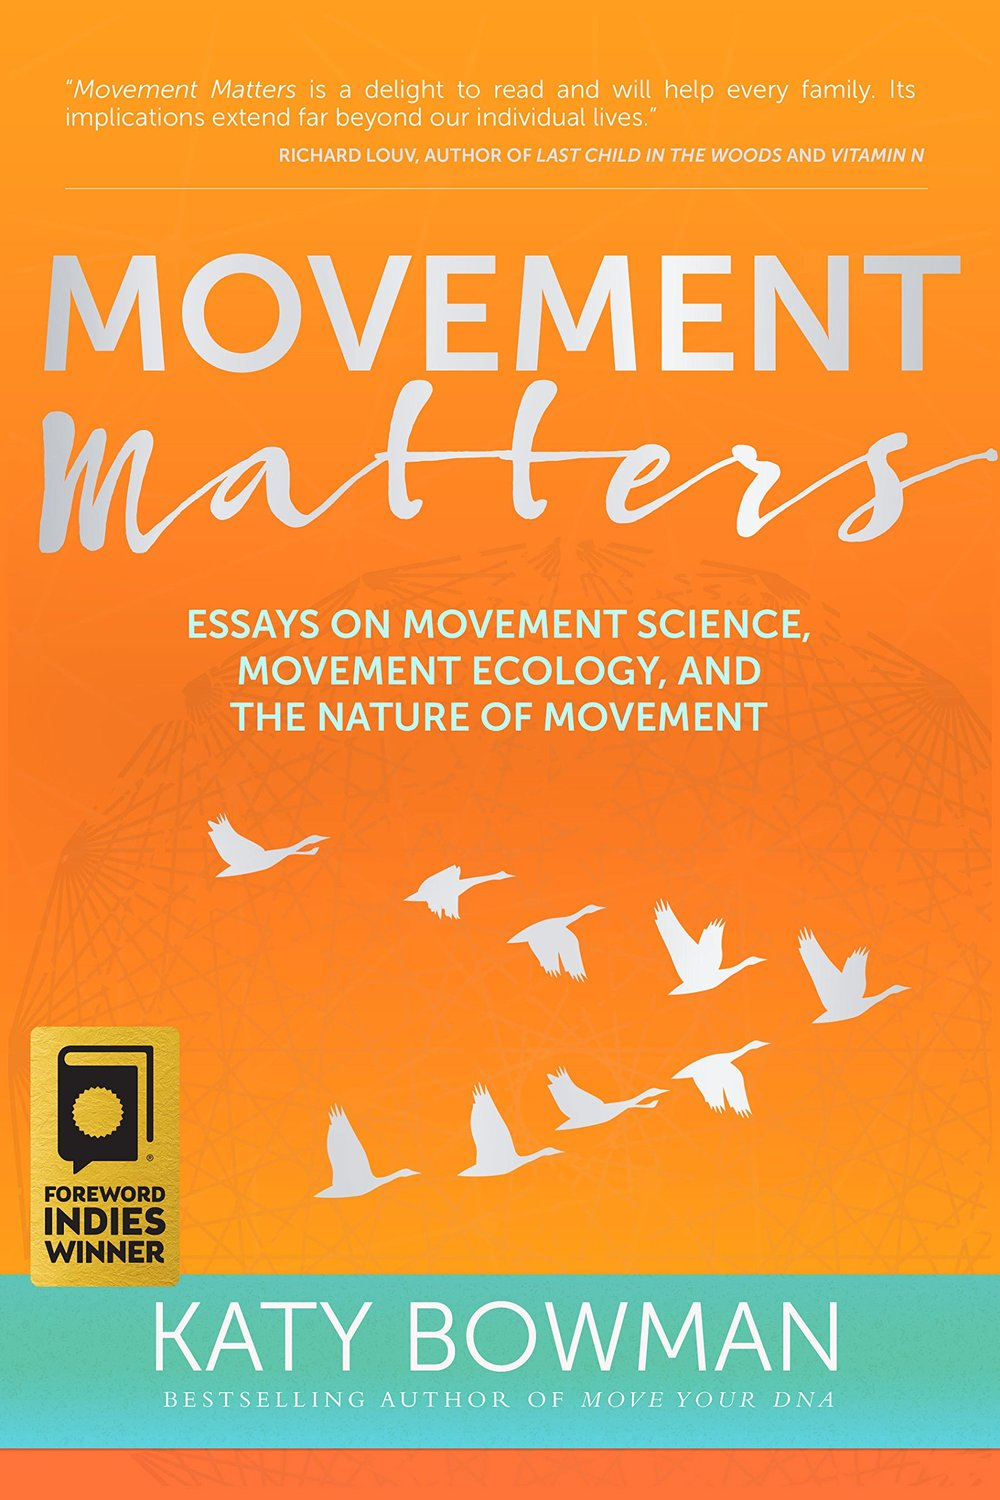 Movement Matters - Really, we recommend anything by biomechanist Katy Bowman. She is brilliant and has a knack for writing about complex topics in a way that is easy to understand. She will open your mind to a whole different perspective on movement. Her titles, in order, include:Simple Steps to Foot Pain ReliefAlignment MattersMove Your DNAWhole Body BarefootDon't Just Sit ThereDiastasis RectiMovement MattersDynamic Aging